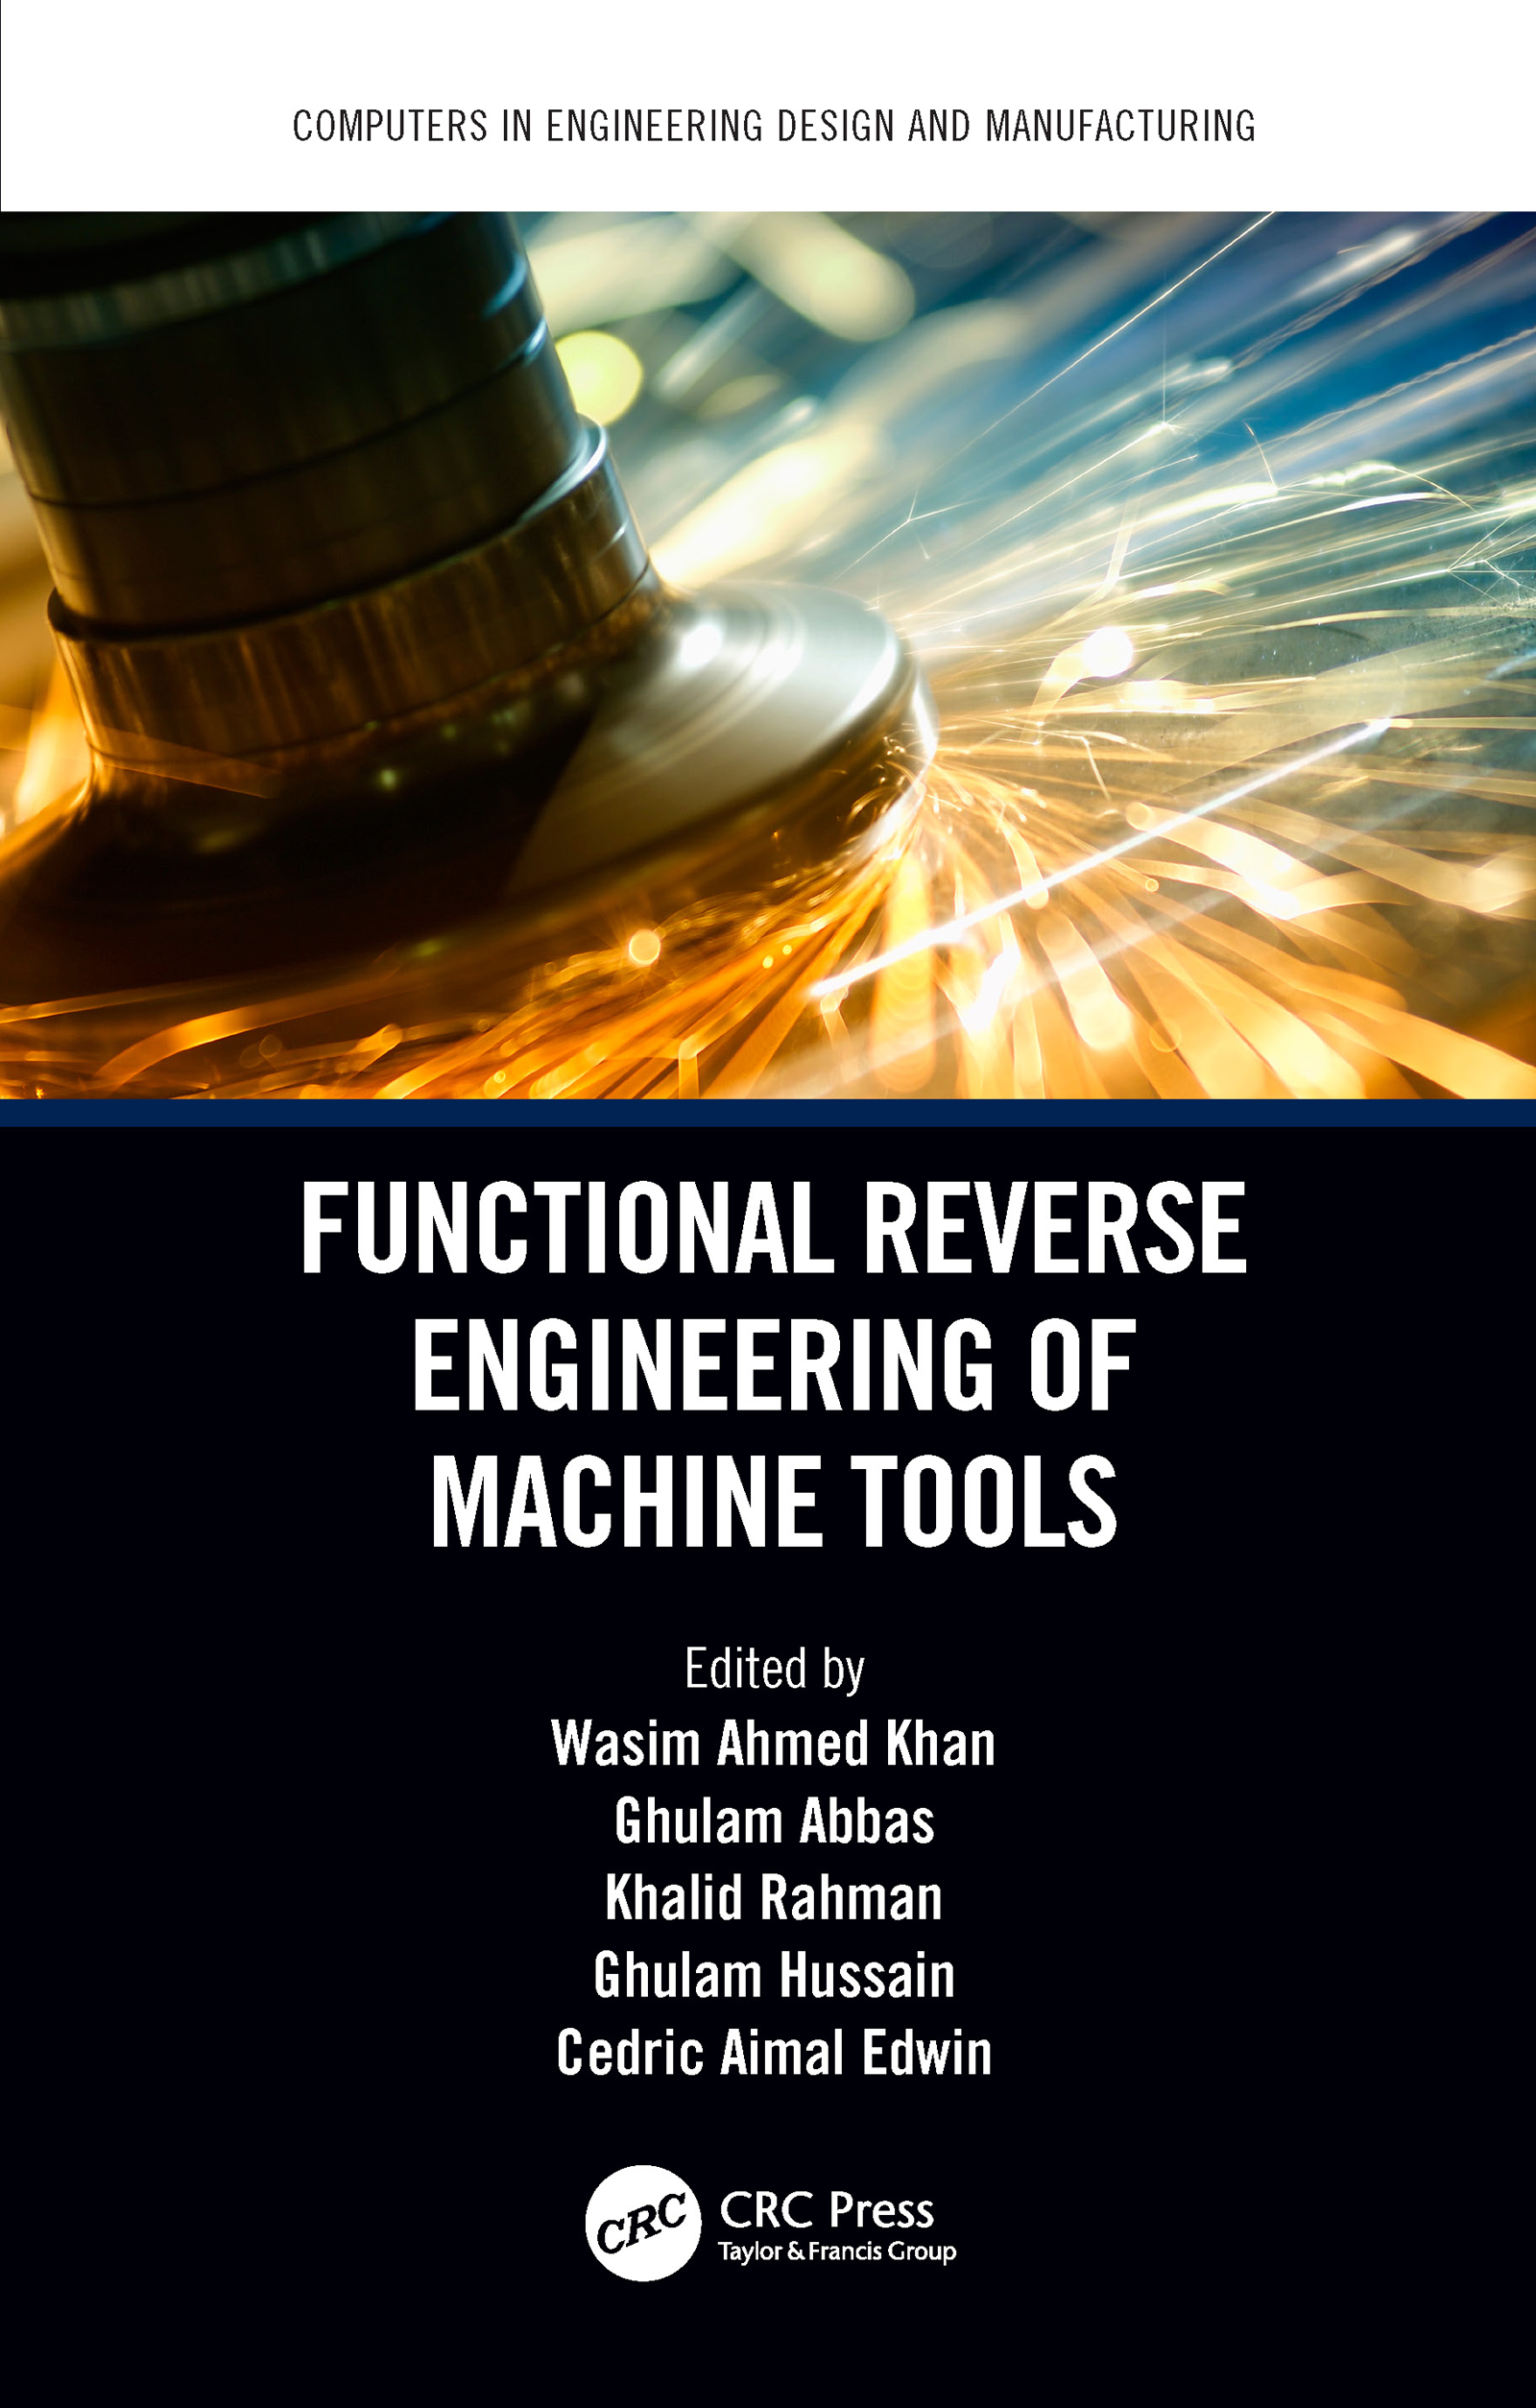 Functional Reverse Engineering of Machine Tools